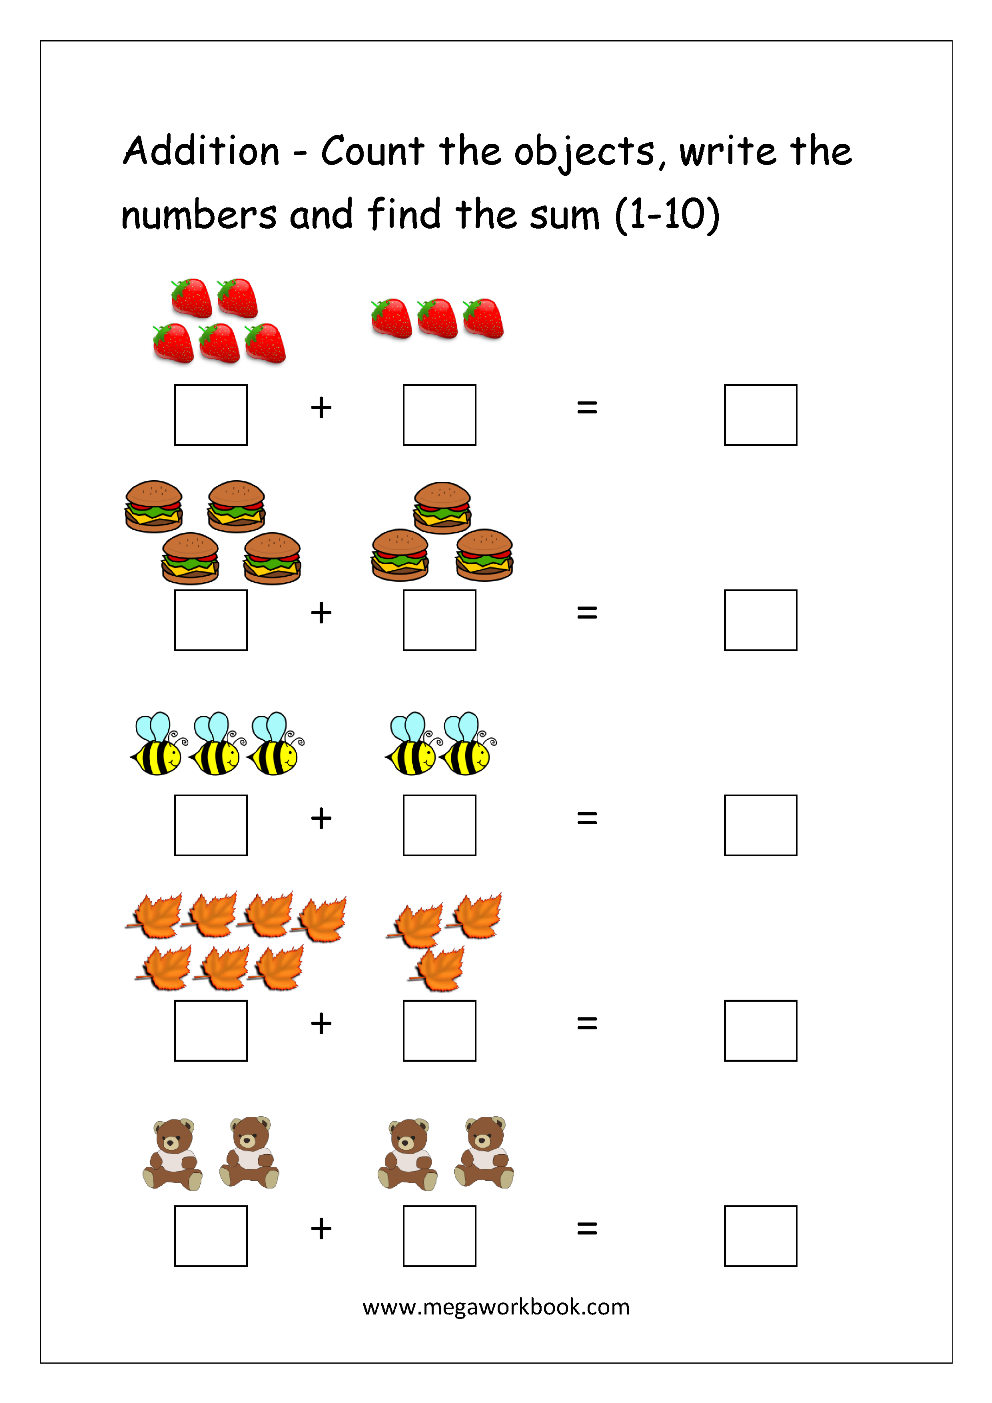 Addition Worksheets 1 10 Davezan – Addition to 10 Worksheet